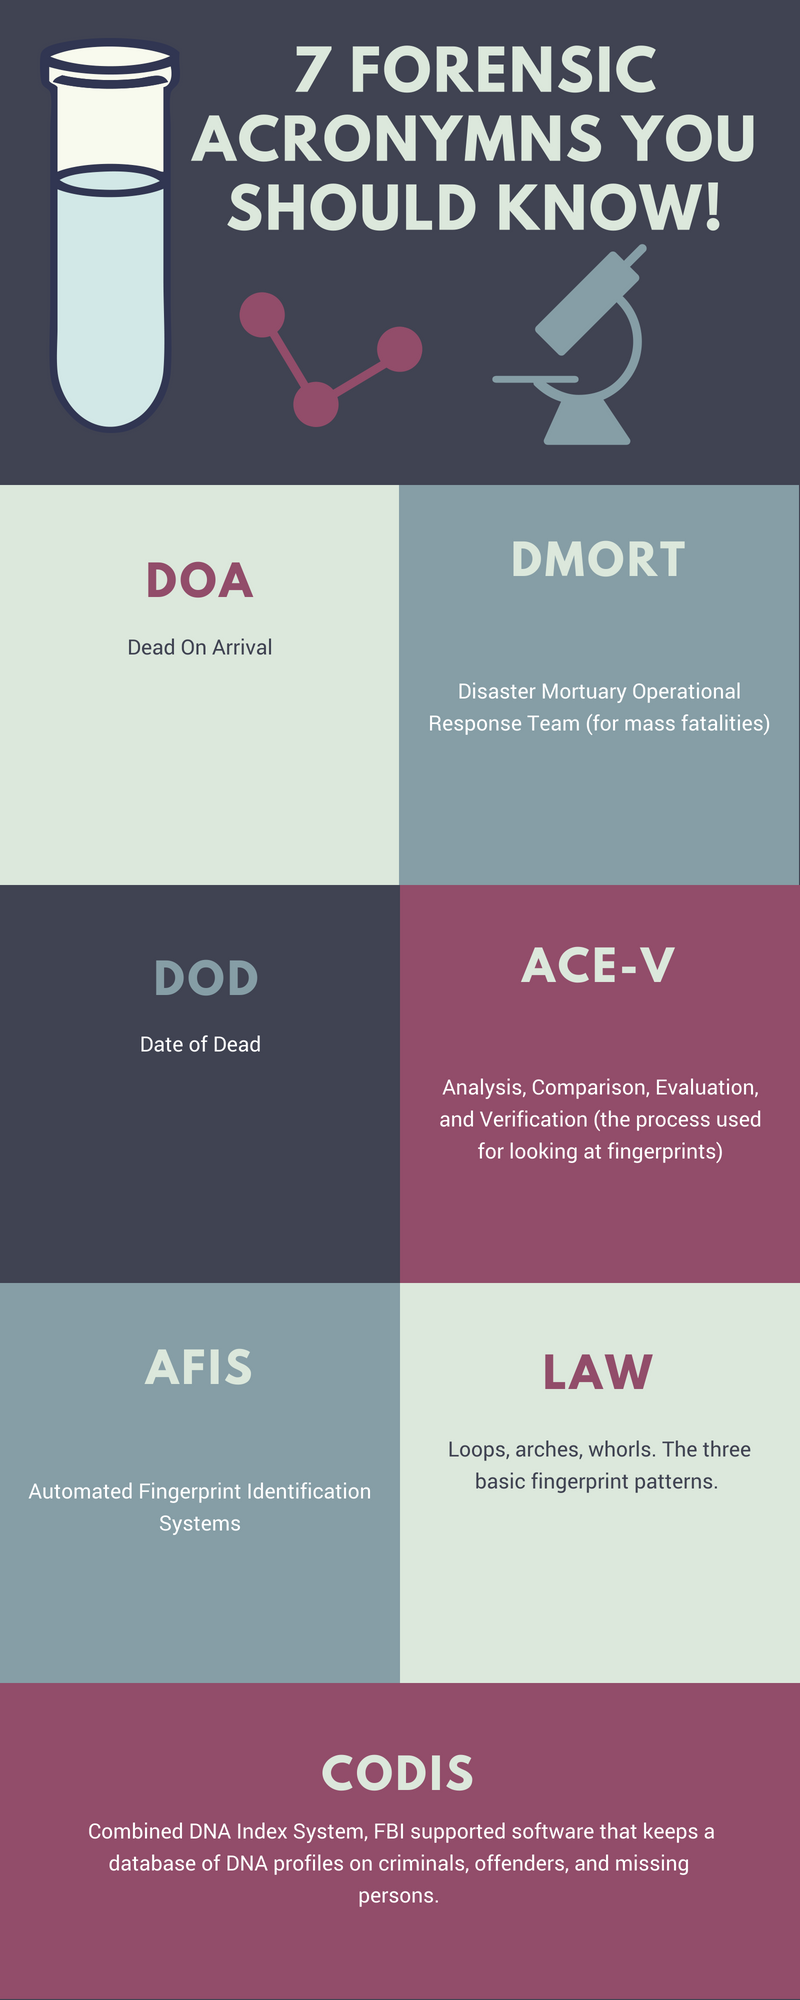 7 Forensic Acronymns you should know!1.png